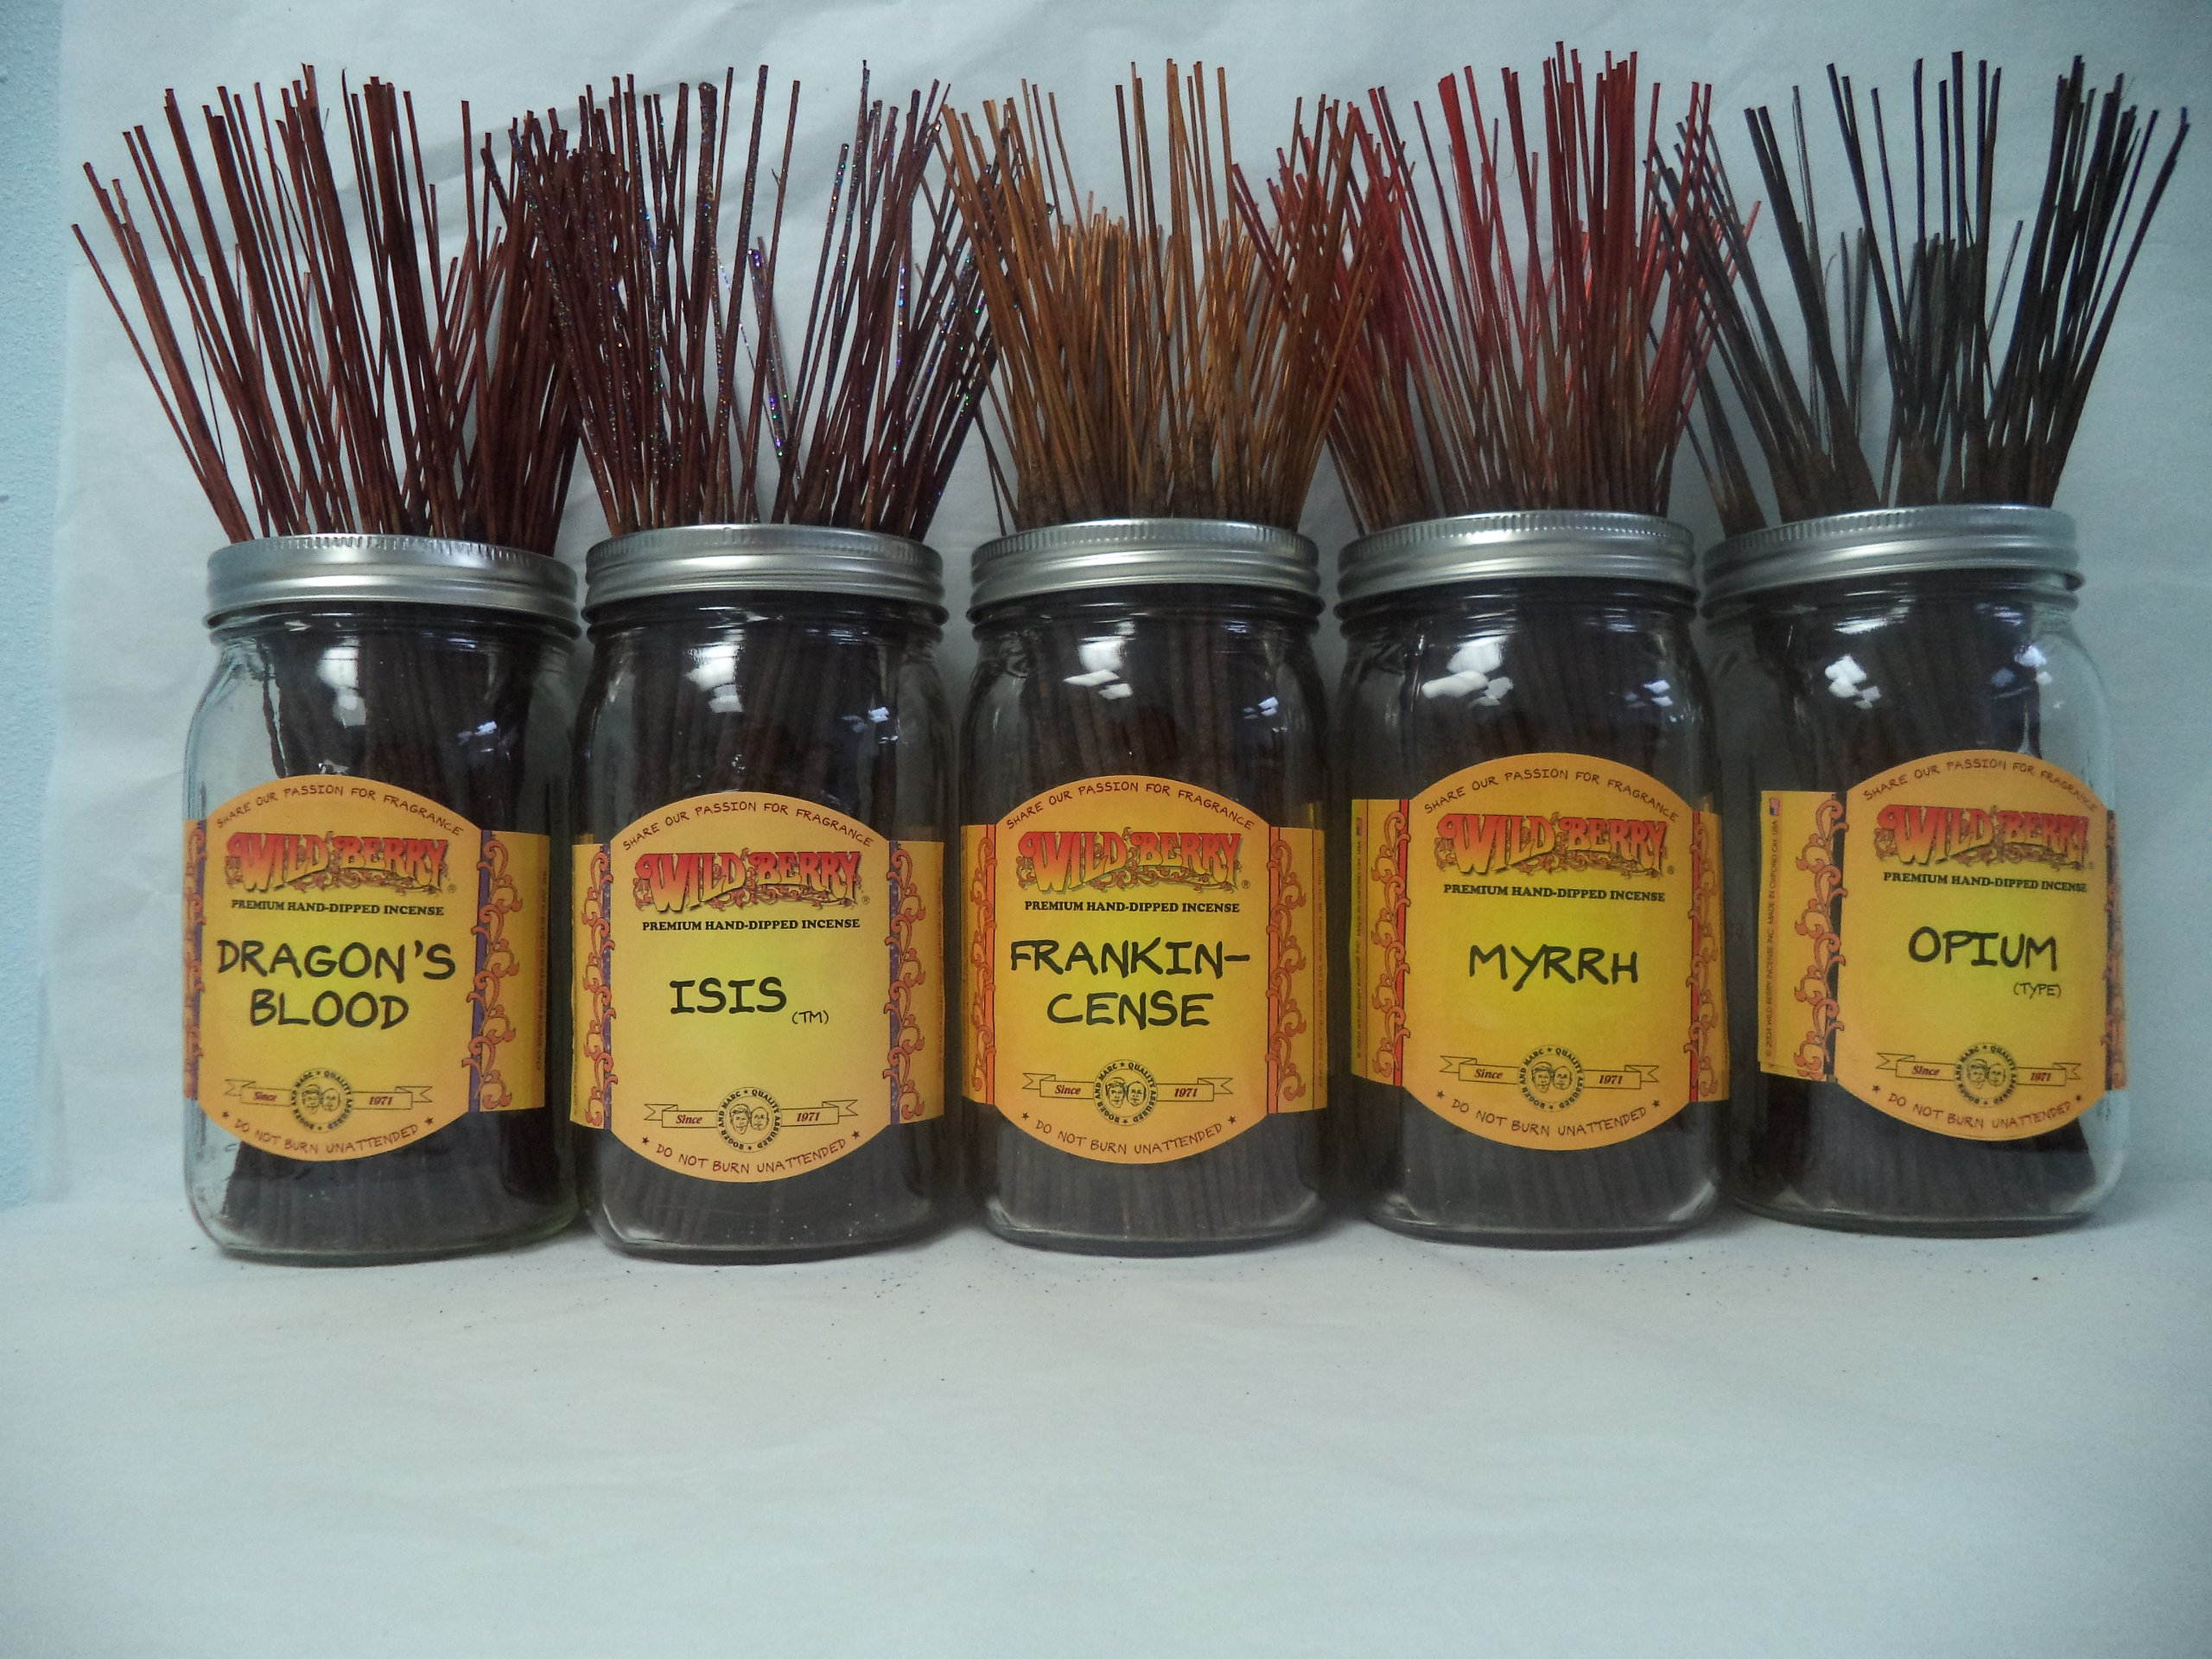 WILDBERRY Incense Sticks Spicy Scents Set #1: 20 Sticks Each of 5 Scents, Total 100 Sticks!